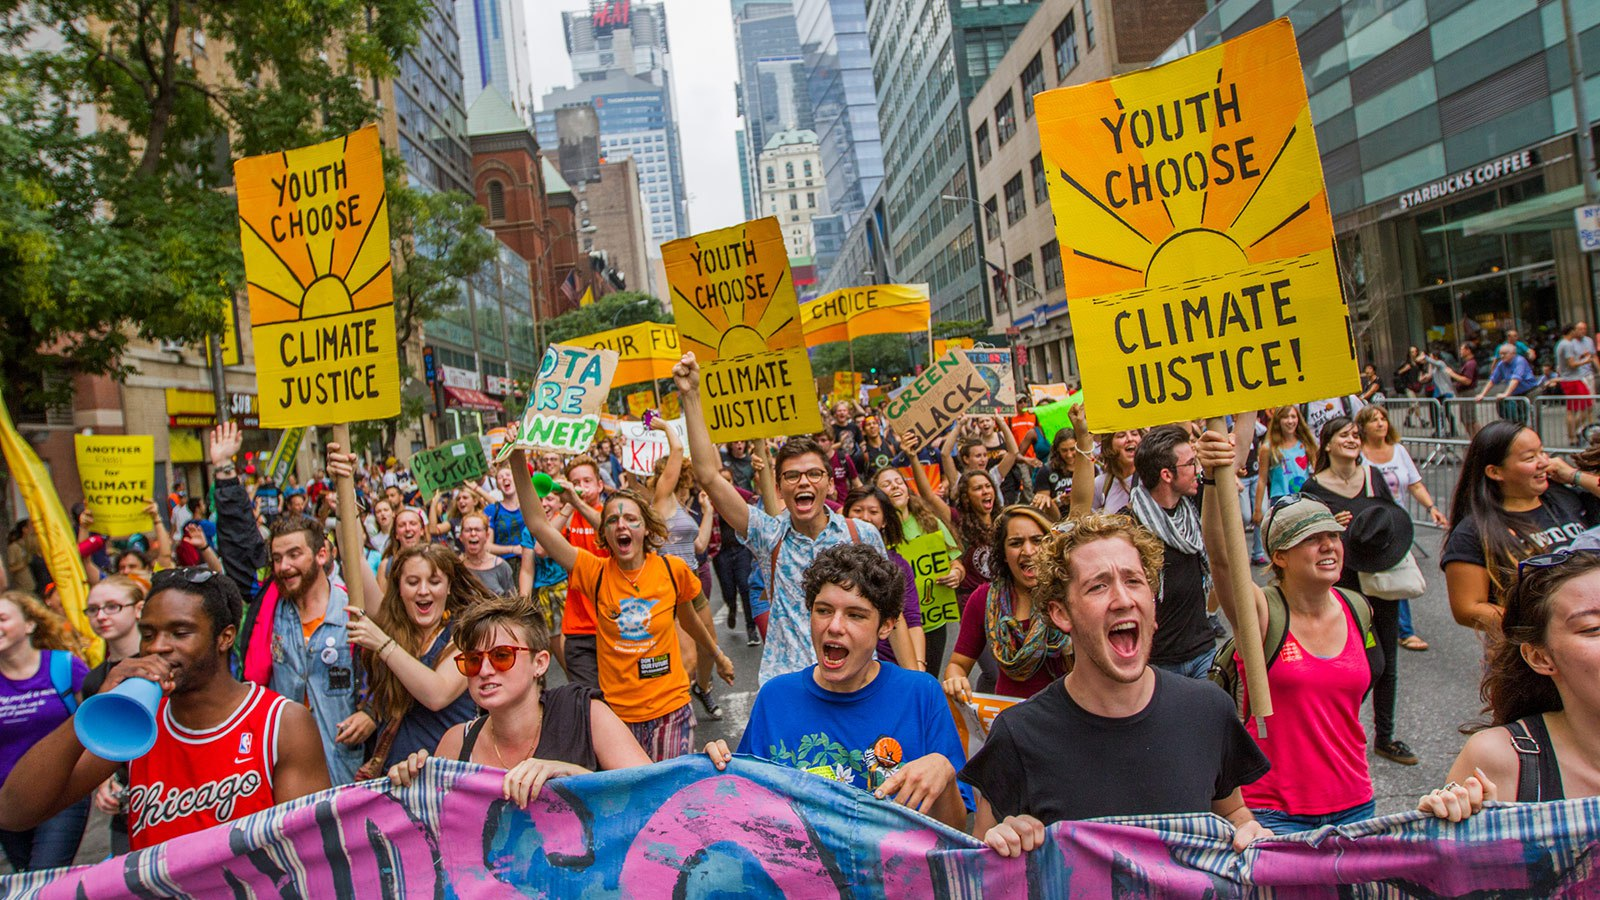 ClimateJusticeMarch.jpg